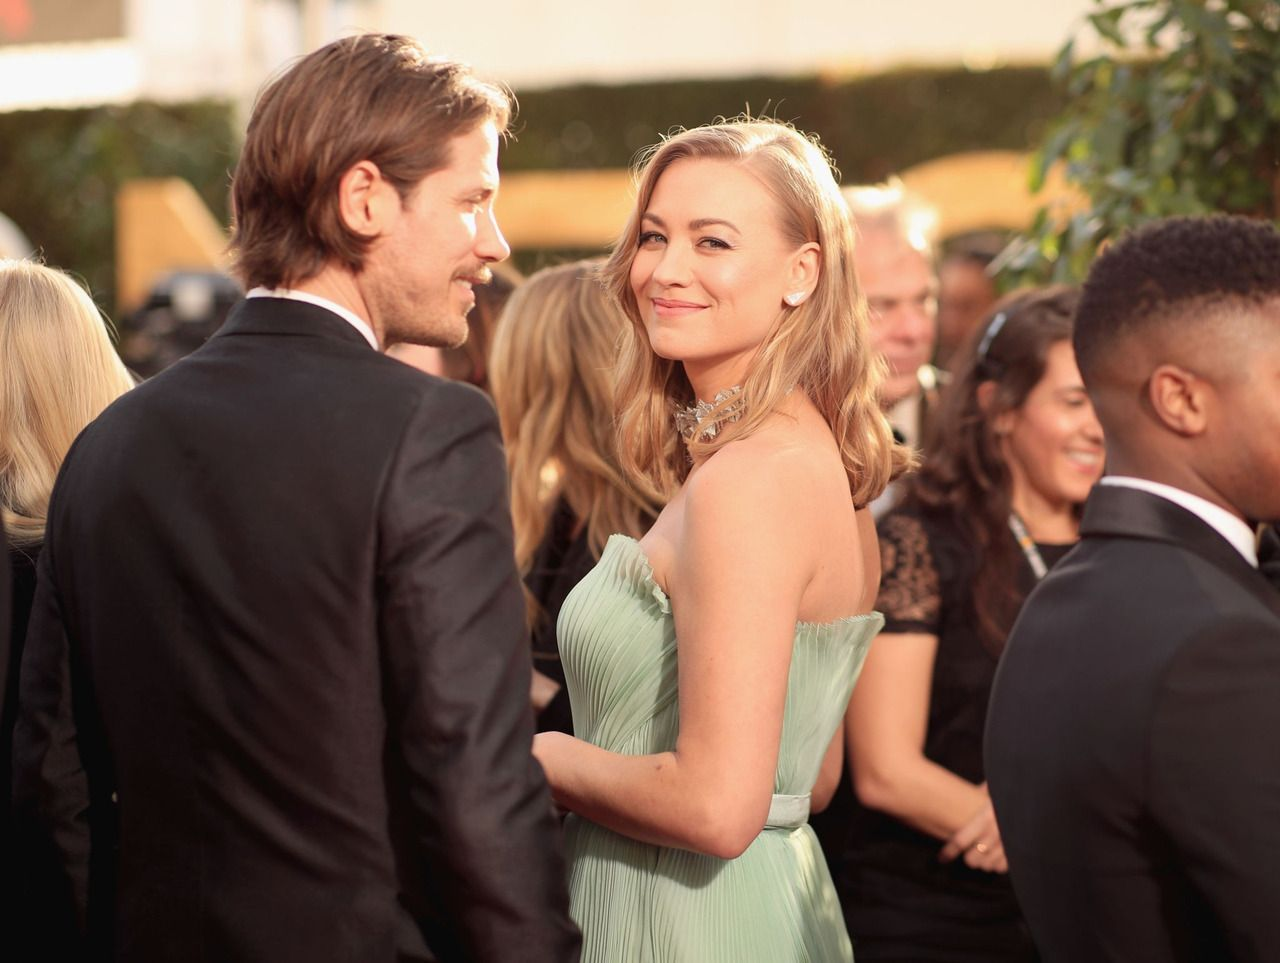 Ball Of Sunshine With Arms And Legs Affirmative Yvonne Strahovski And Tim Loden Attends The 76th Yvonne Strahovski Beverly Hilton Hotel Golden Globe Award As an actor, he has a few acting credits to his name, including 'guys who cook. yvonne strahovski and tim loden attends